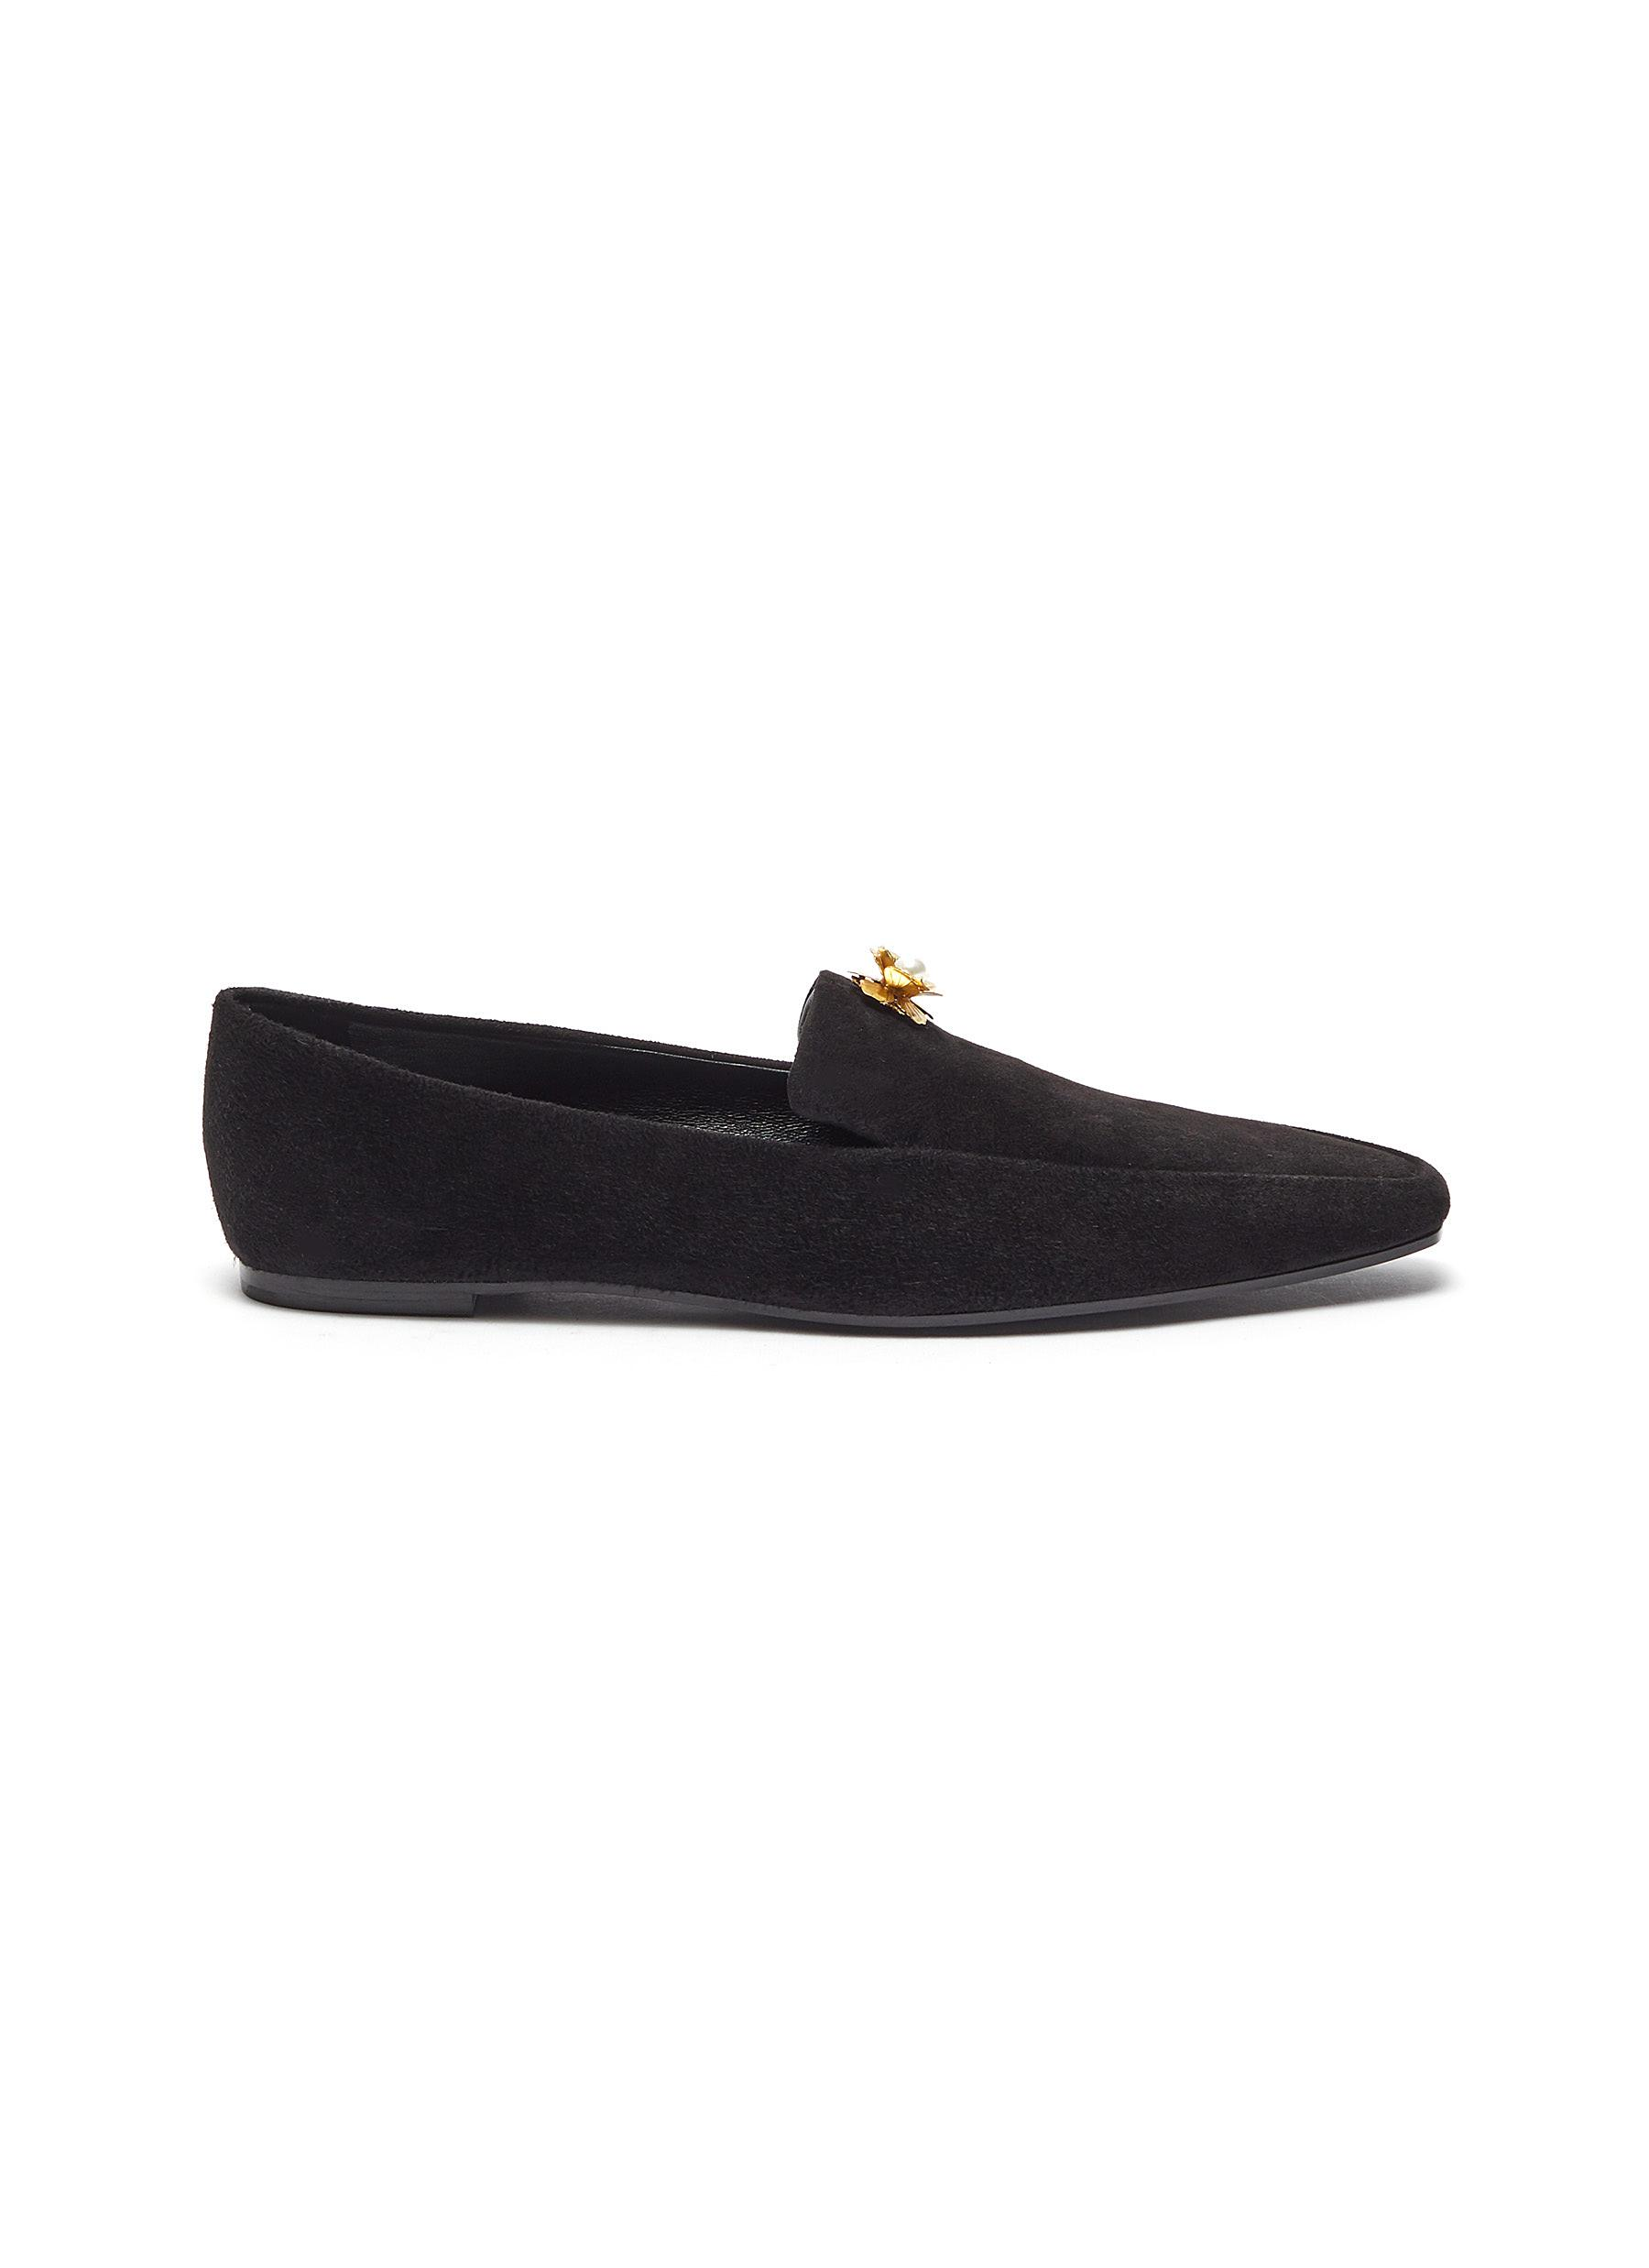 The Row Flats Minimal brooch pin suede loafers